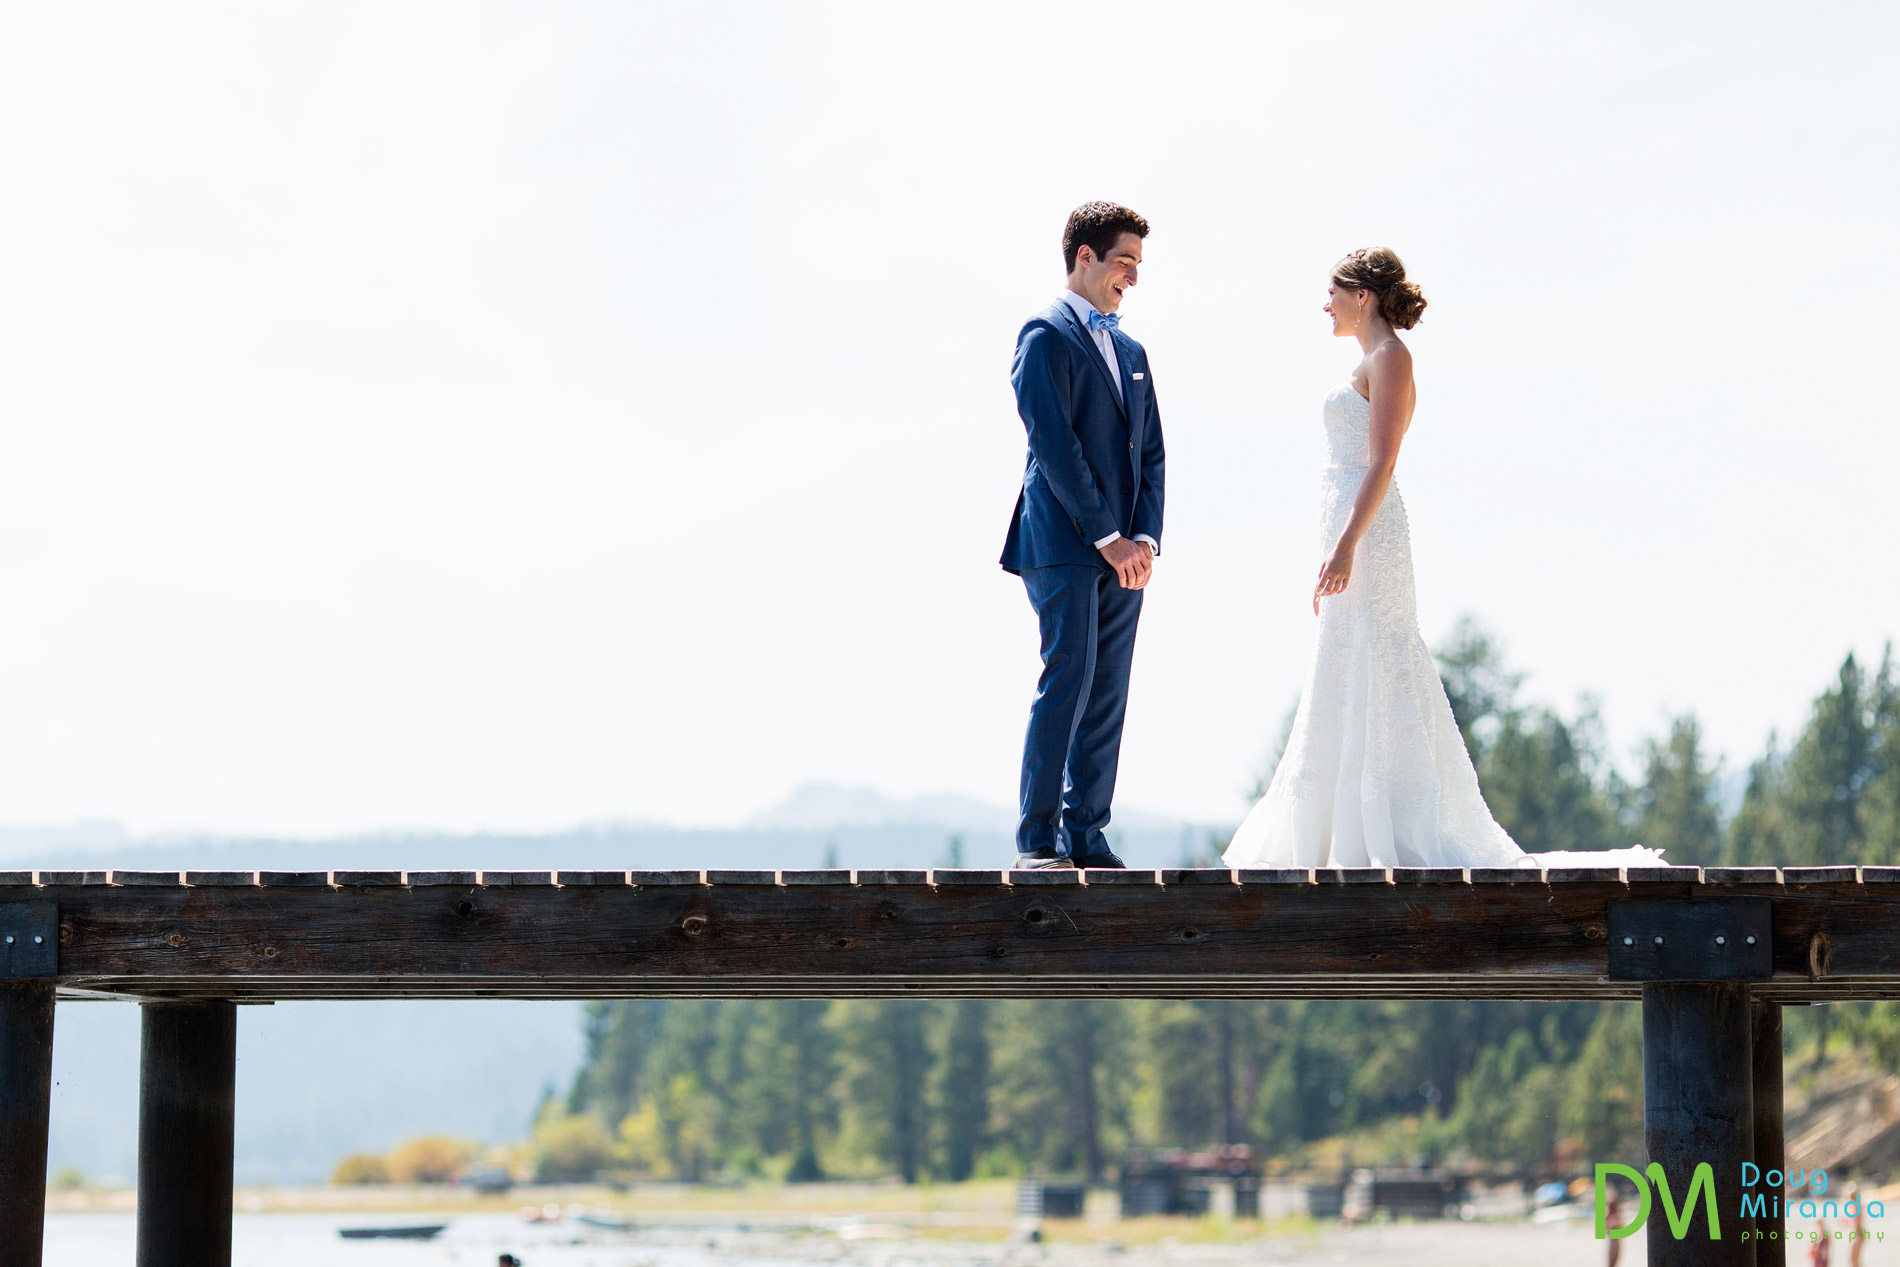 skylandia beach wedding tahoe city